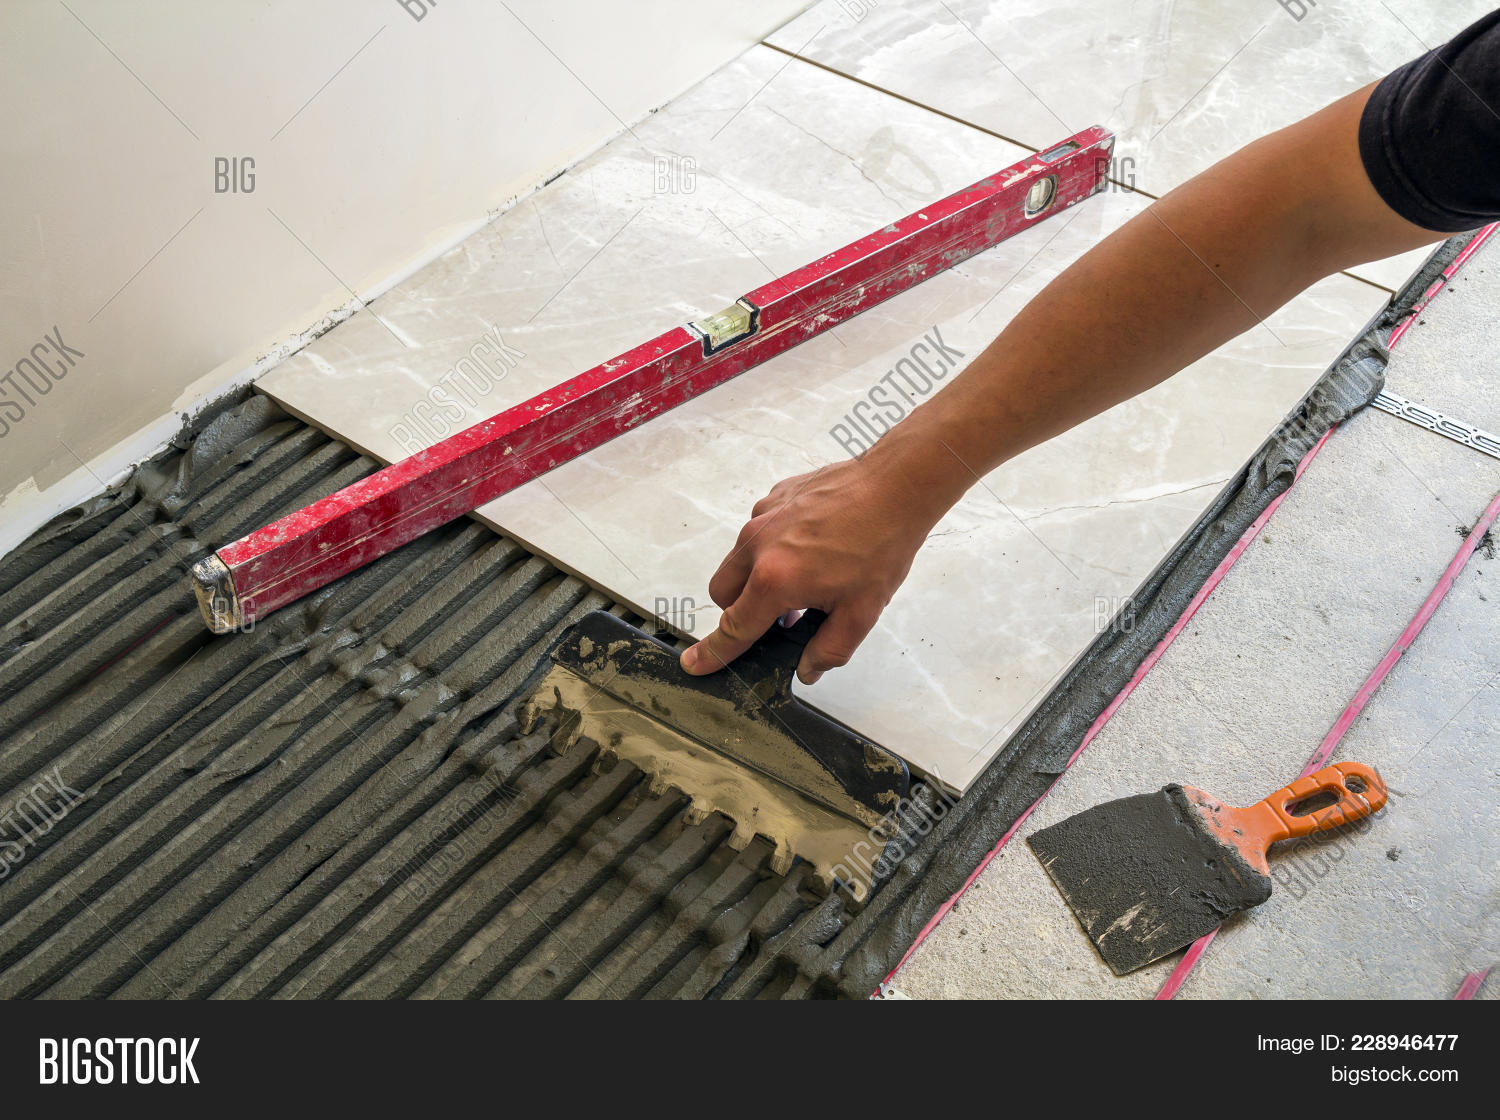 Ceramic tiles tools tiler worker image photo bigstock ceramic tiles and tools for tiler worker hand installing floor tiles home improvement dailygadgetfo Image collections